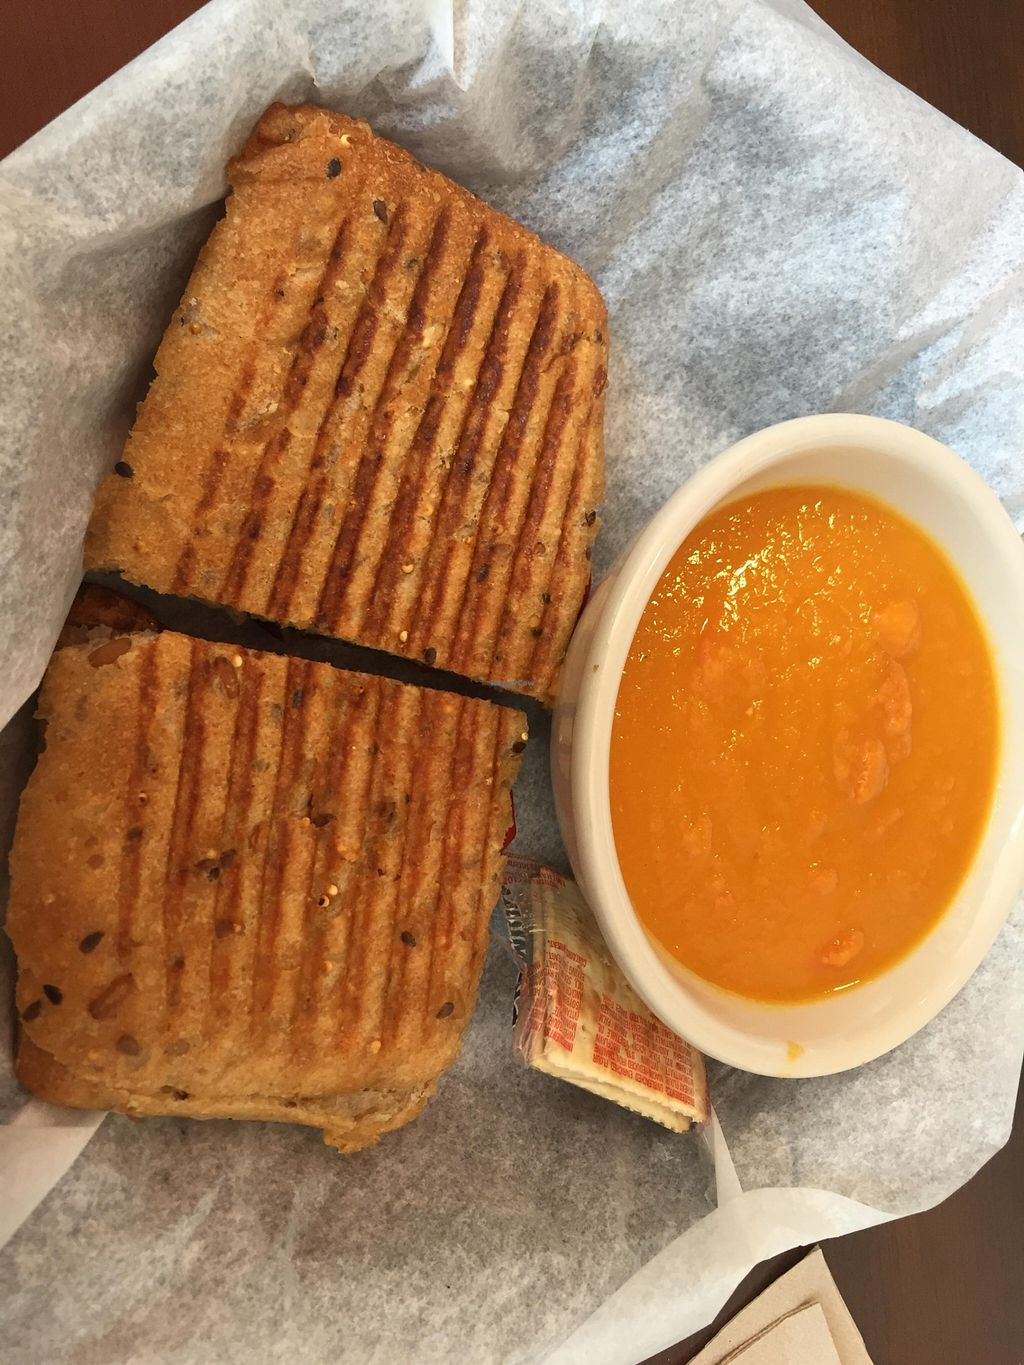 Photo of Fresh Healthy Cafe  by V3ganFoodie <br/>Portobello Panini (without cheese) and Carrot Ginger Soup <br/> February 28, 2016  - <a href='/contact/abuse/image/70268/138127'>Report</a>